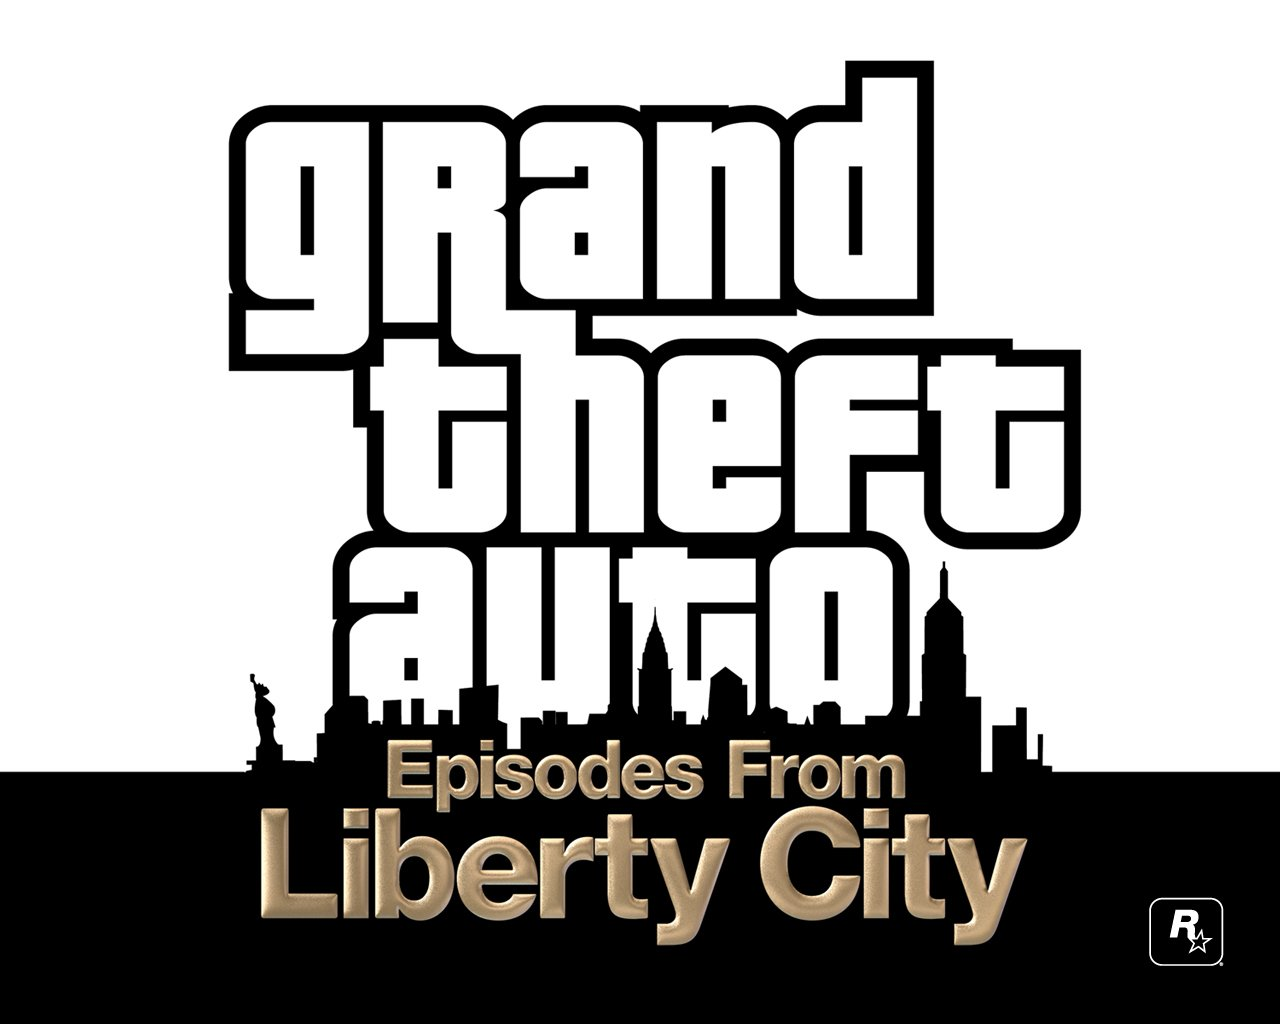 High Quality GTA IV Wallpapers Personal Blog Of Mario